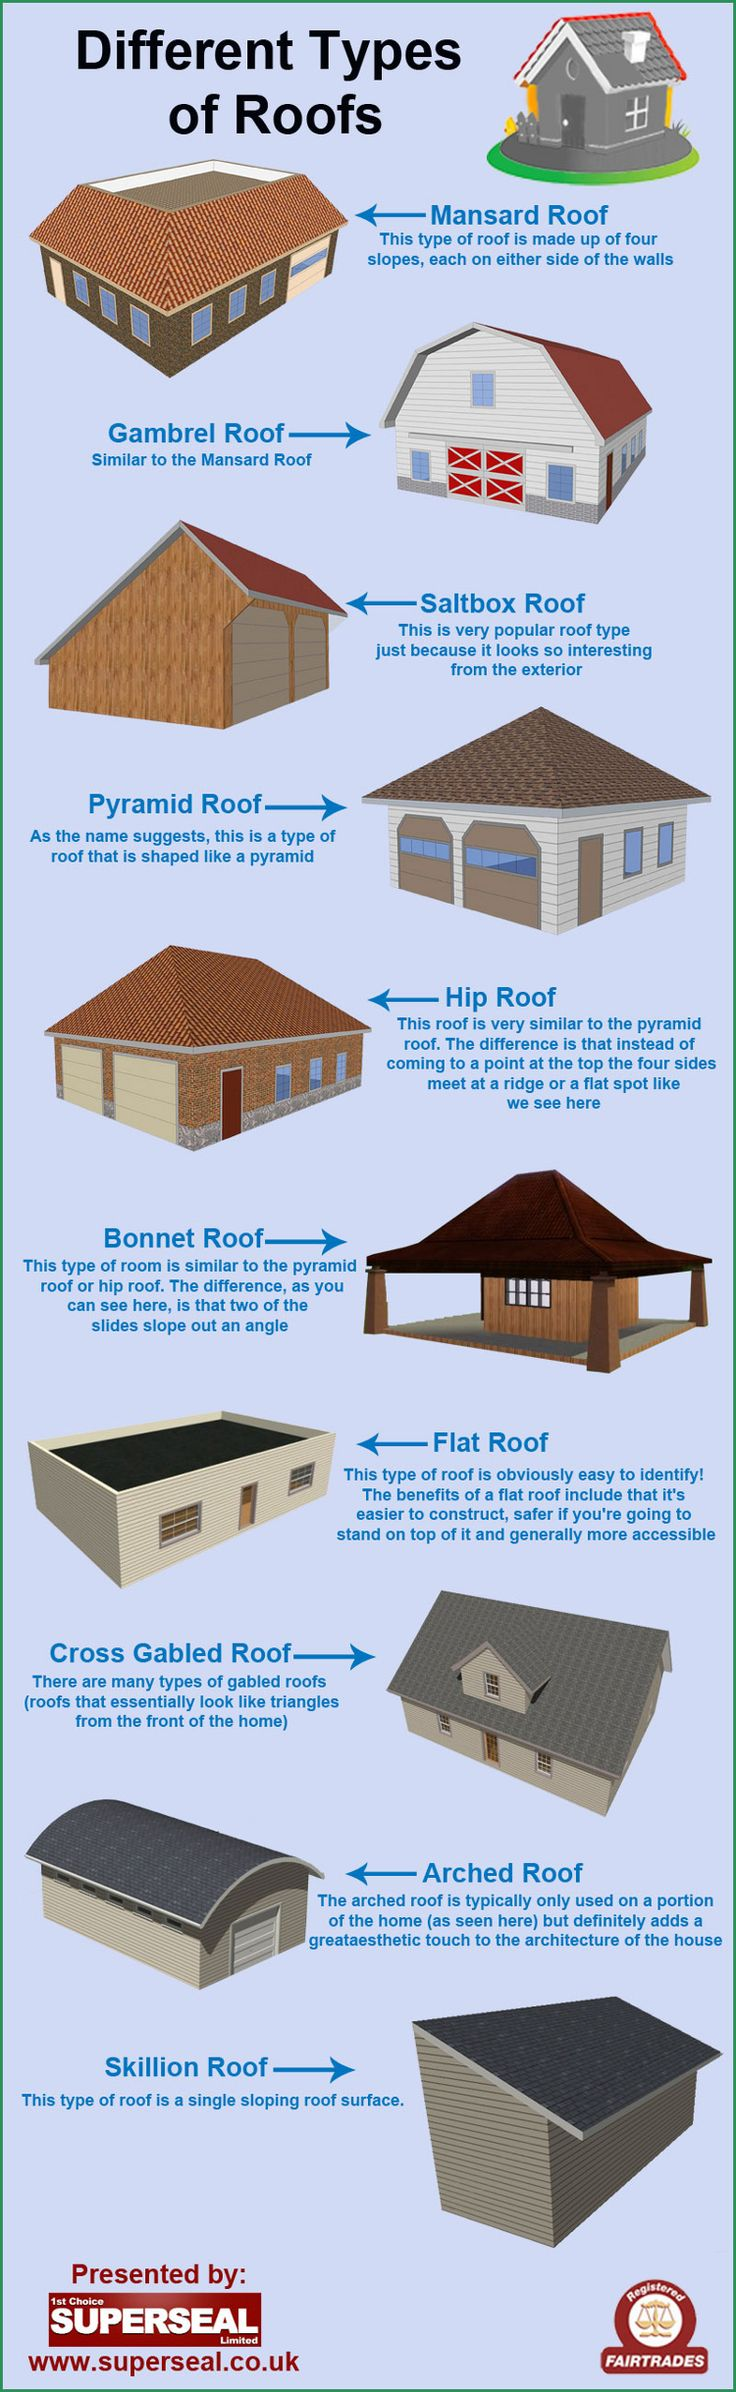 20 Most Common Types Of Roofs For Homes   LandlordStation.com